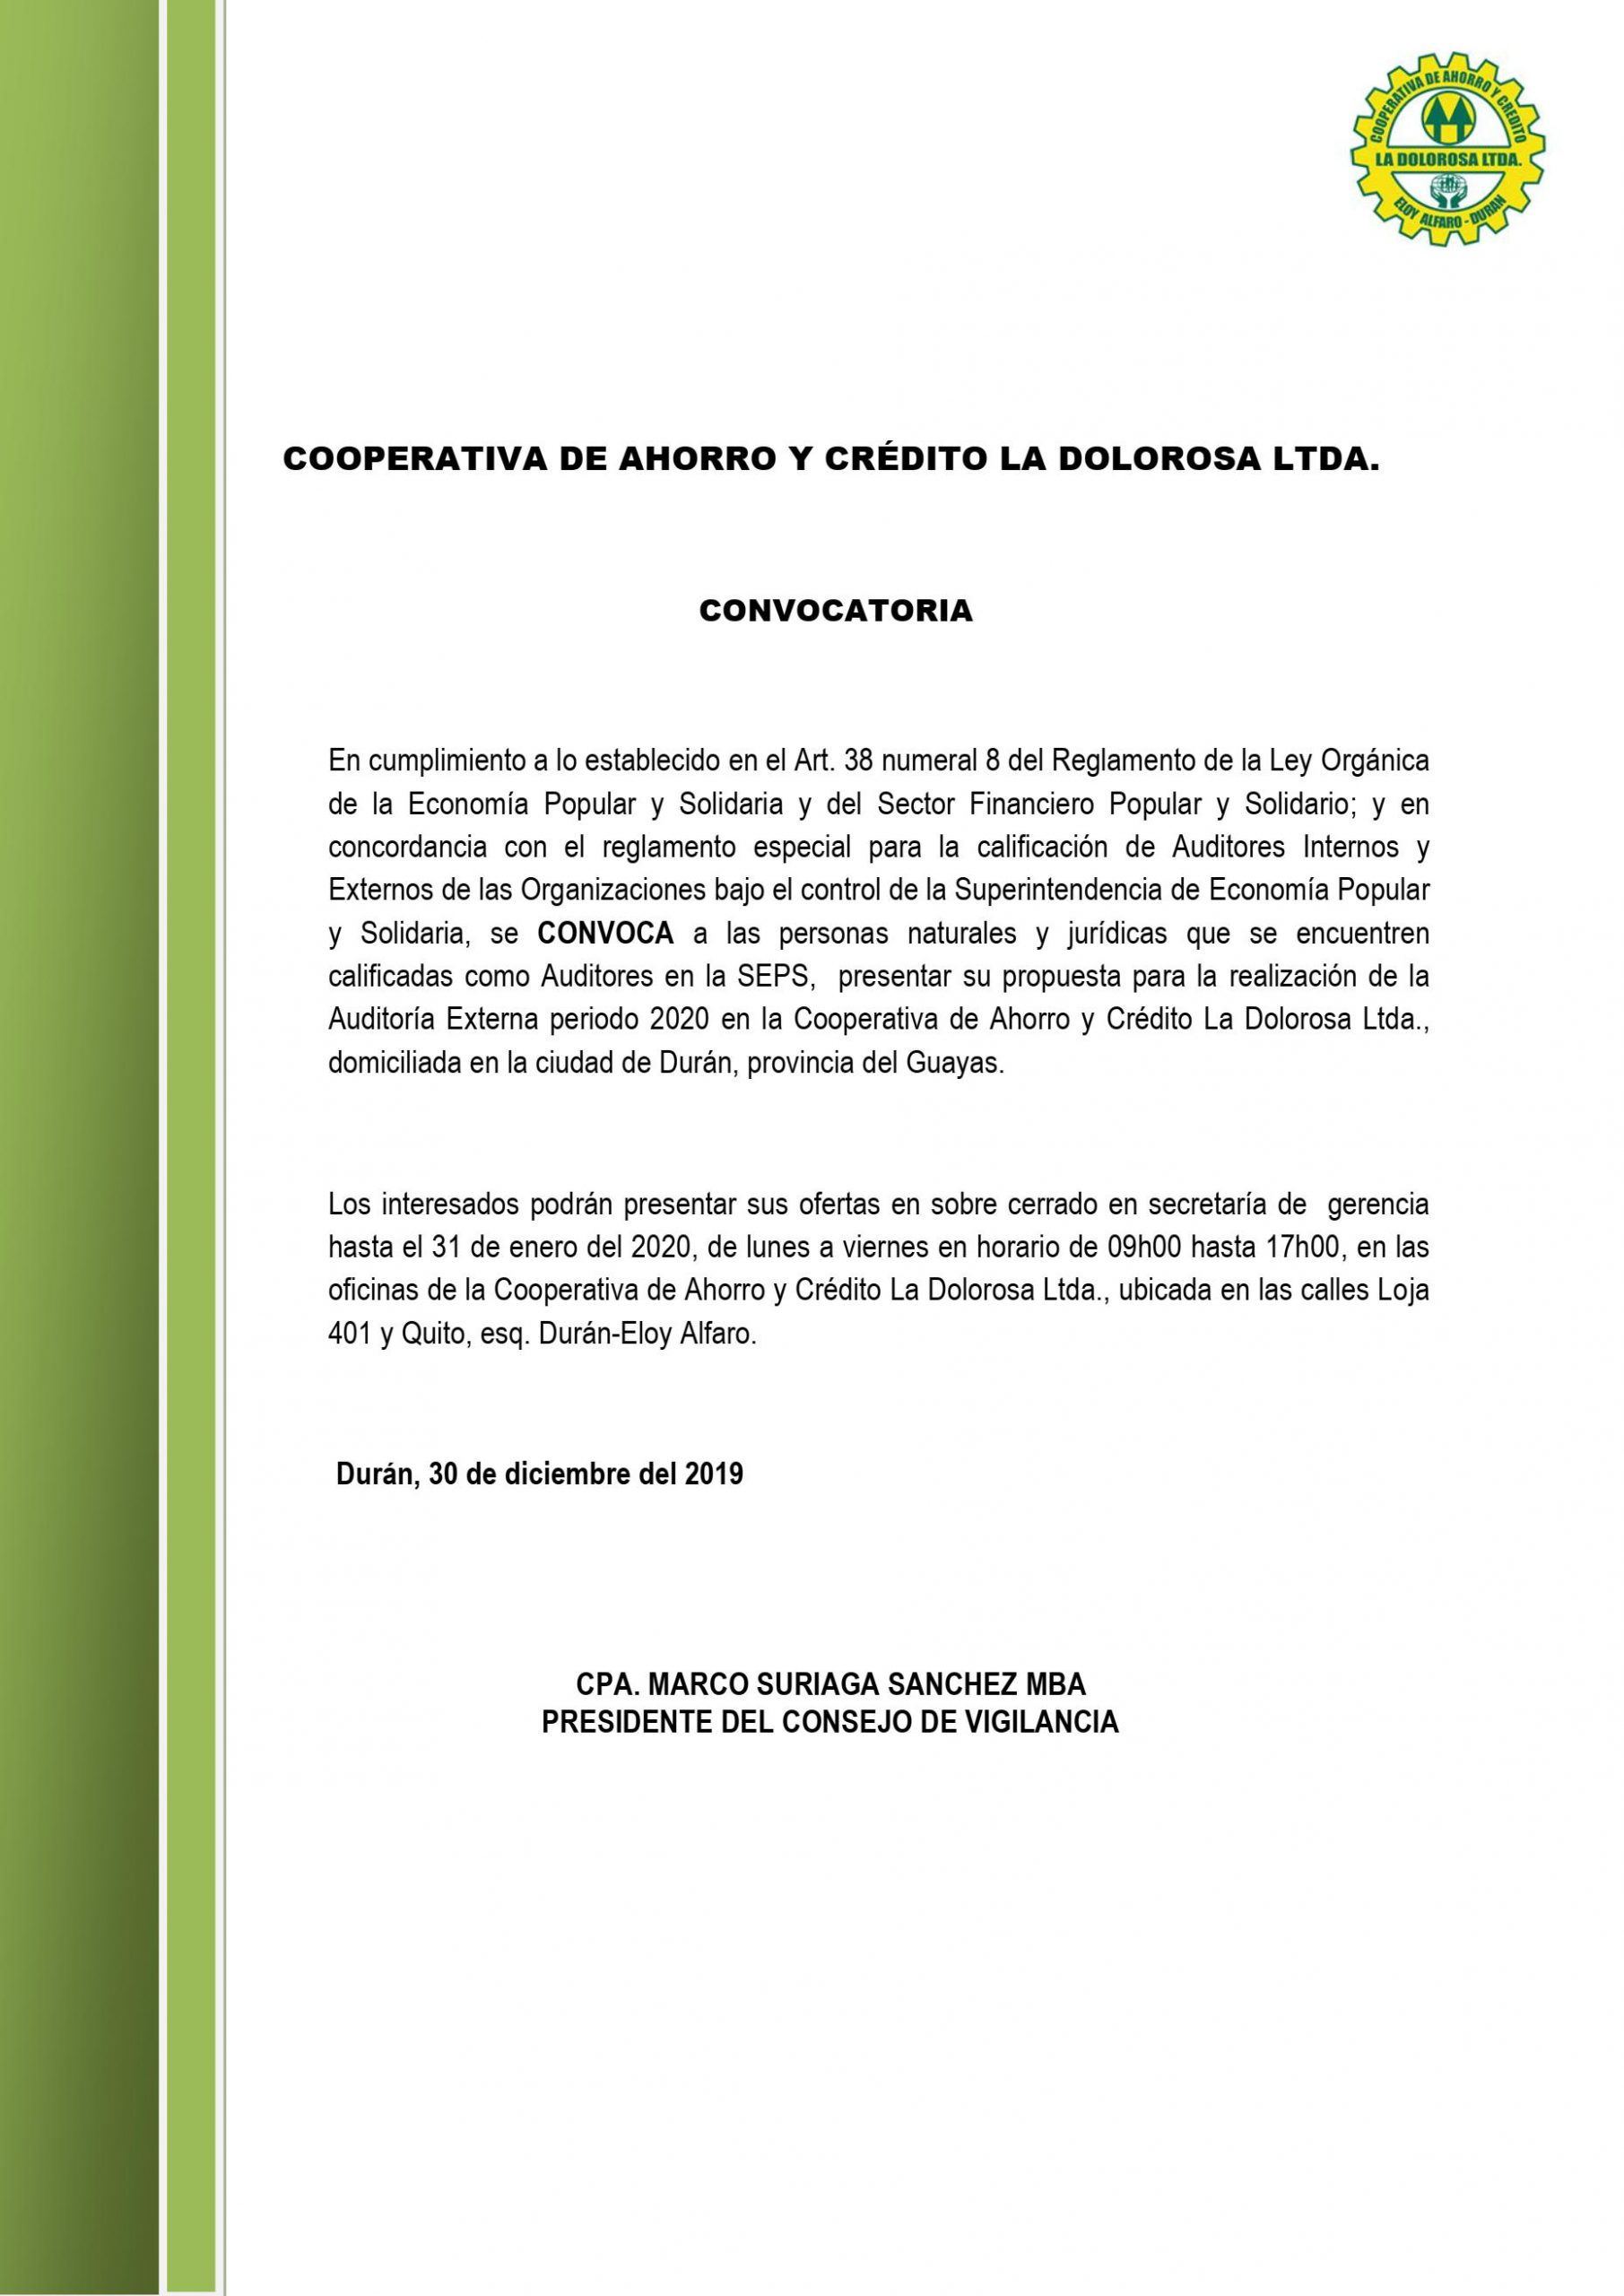 CONVOCATORIA AUDITORES INTERNOS O EXTERNOS 29-12-2019